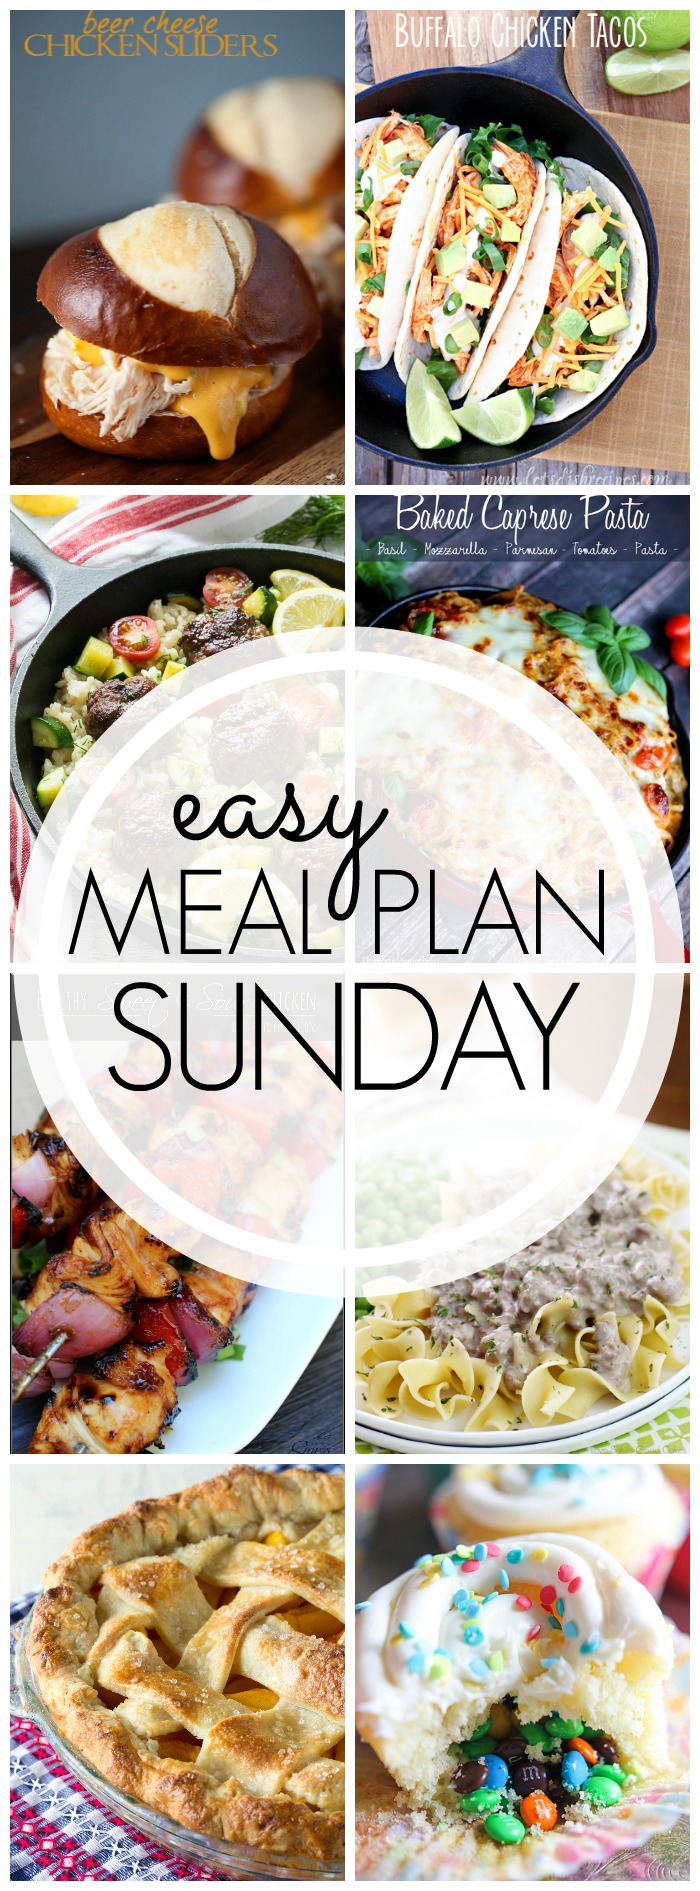 EASY MEAL PLAN – Week 53 - 7 delicious dinners and 2 desserts!